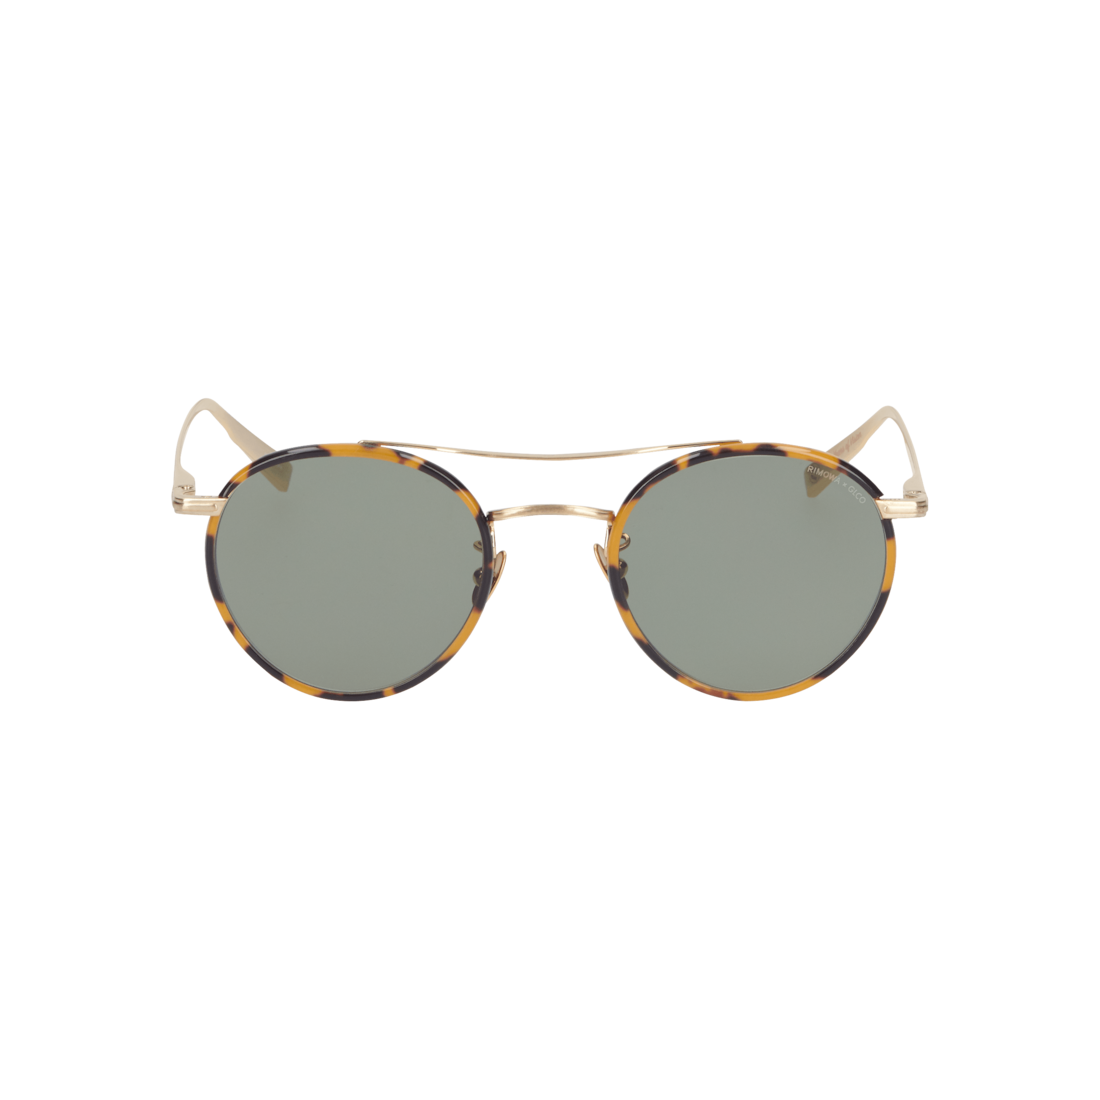 Tortoise Sunglasses in Metal and Acetate